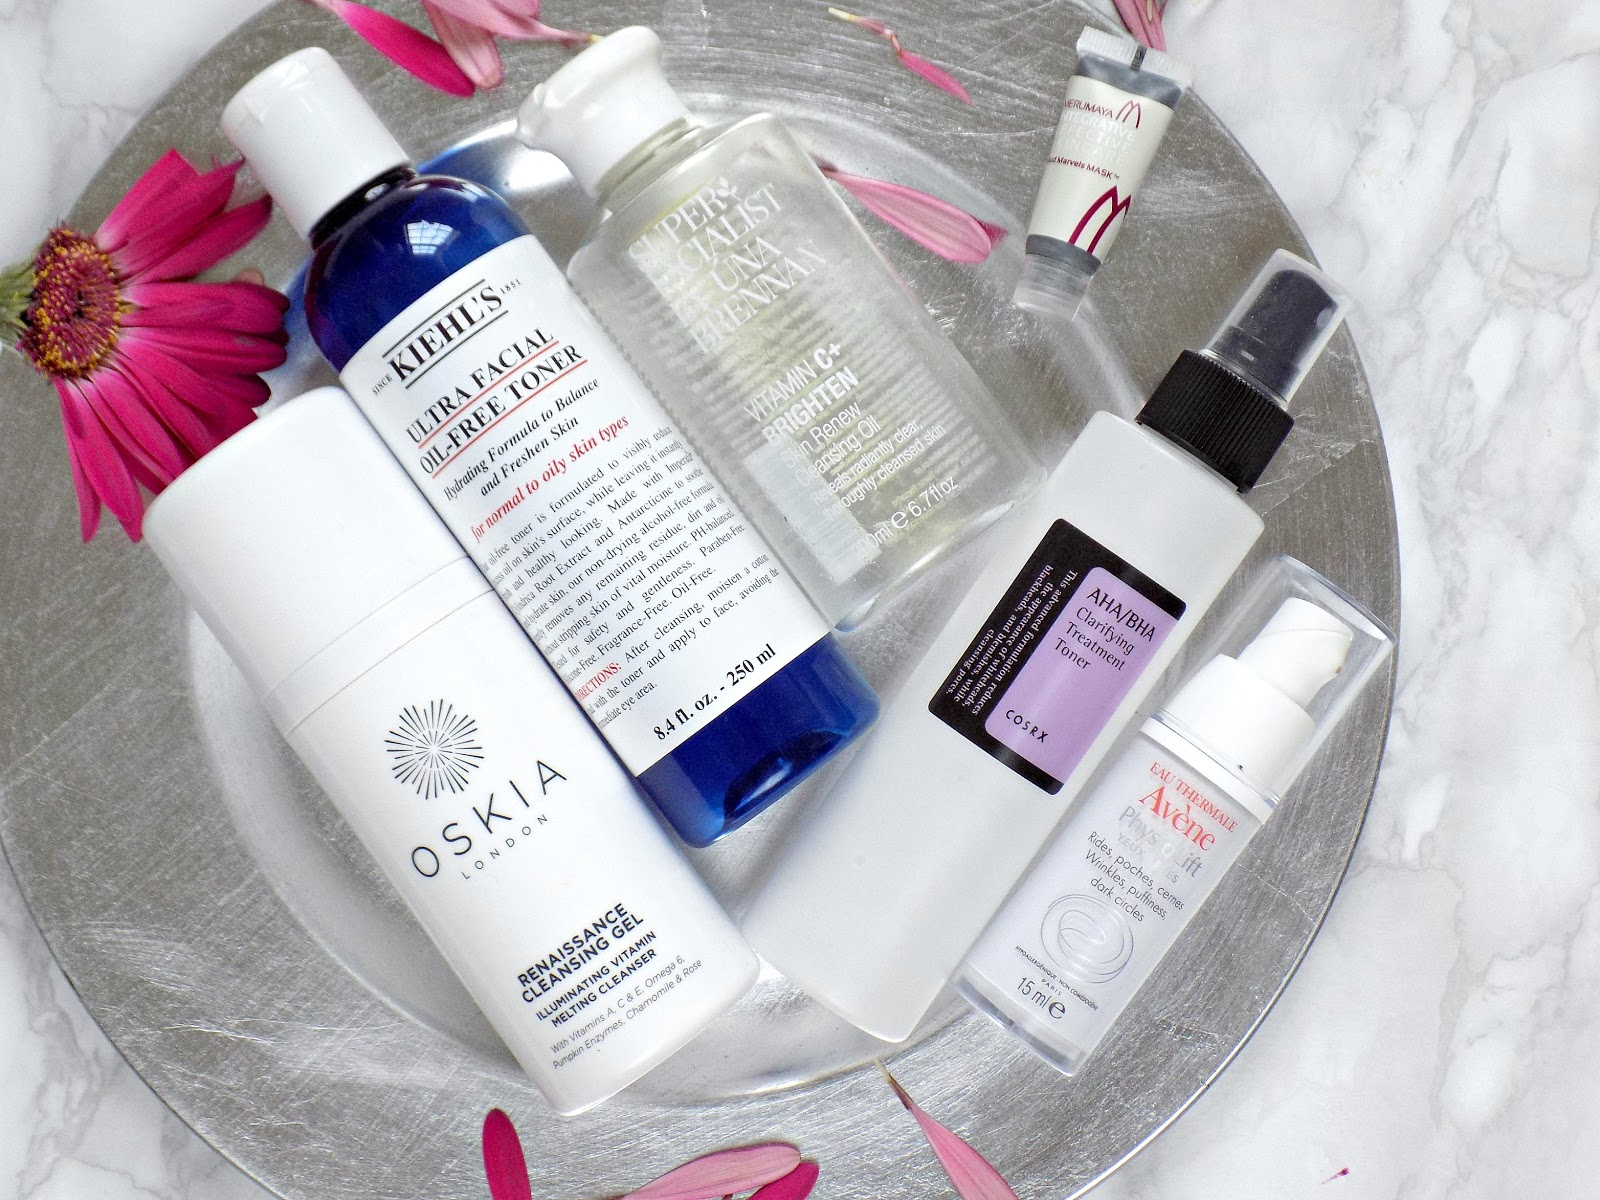 Skincare and body care products I've used up lately